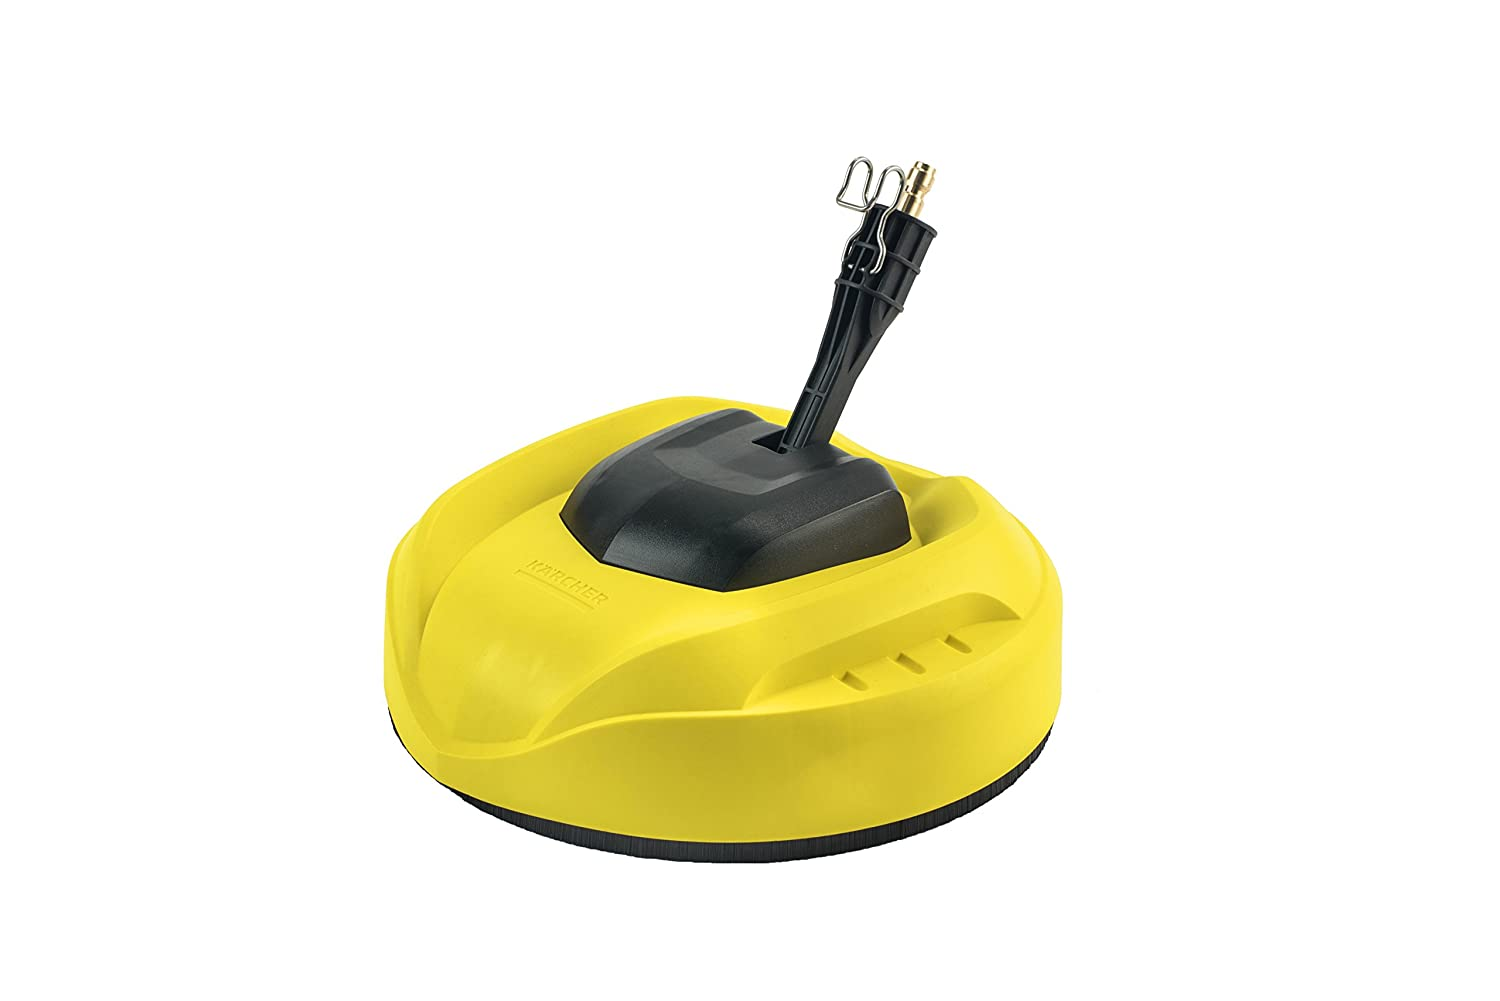 Karcher 8.755-848.0 Hard Surface Cleaner for Electric Pressure Washers